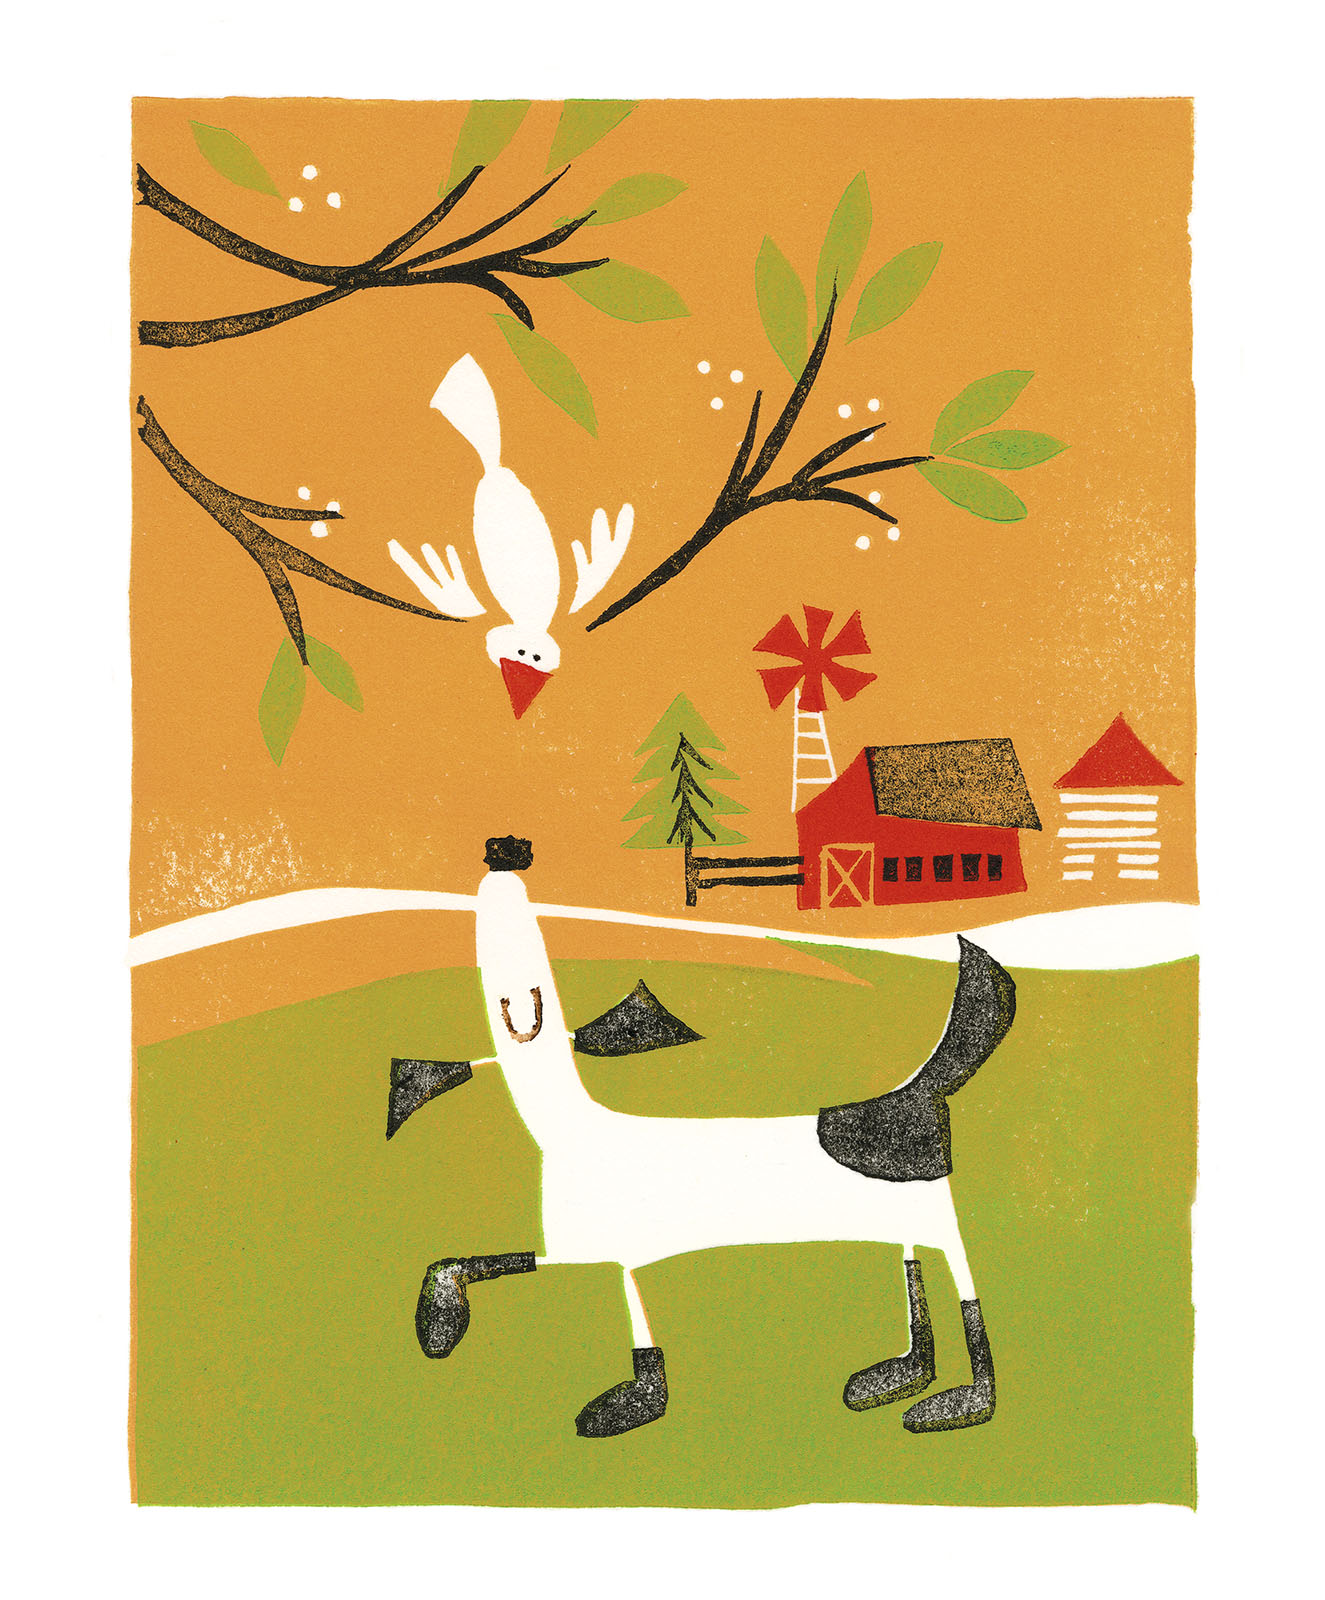 I told editor Janine Vangool I grew up on a picture book-like family farm with lots of animals including a dog named Tippy. Here's Tippy engaging with a slightly cautious bird as she makes her rounds. To see the interview and snaps of my letterpress studio get yourself a copy of  Work/Life 3  .